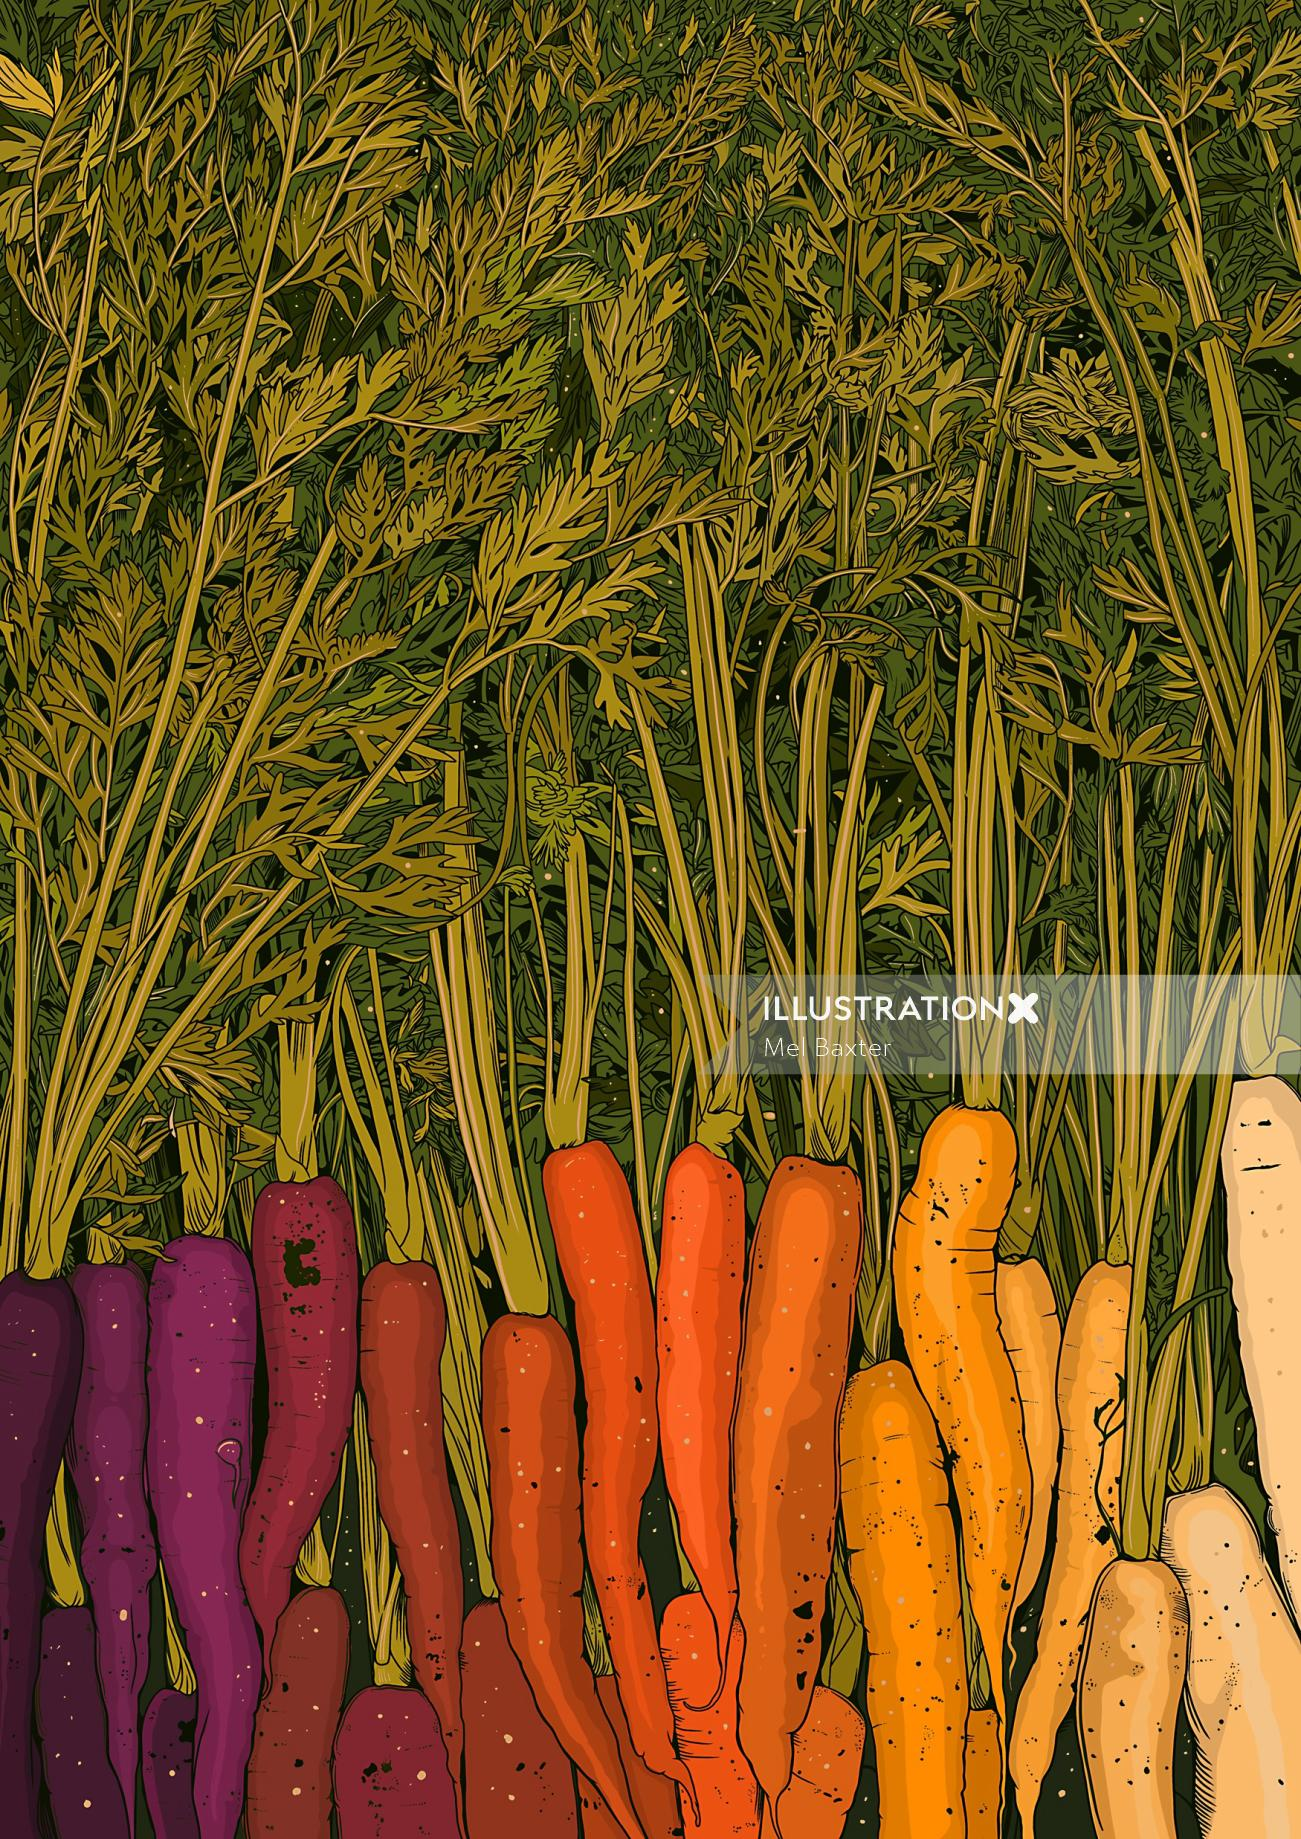 Digital illustration of Rainbow Carrots